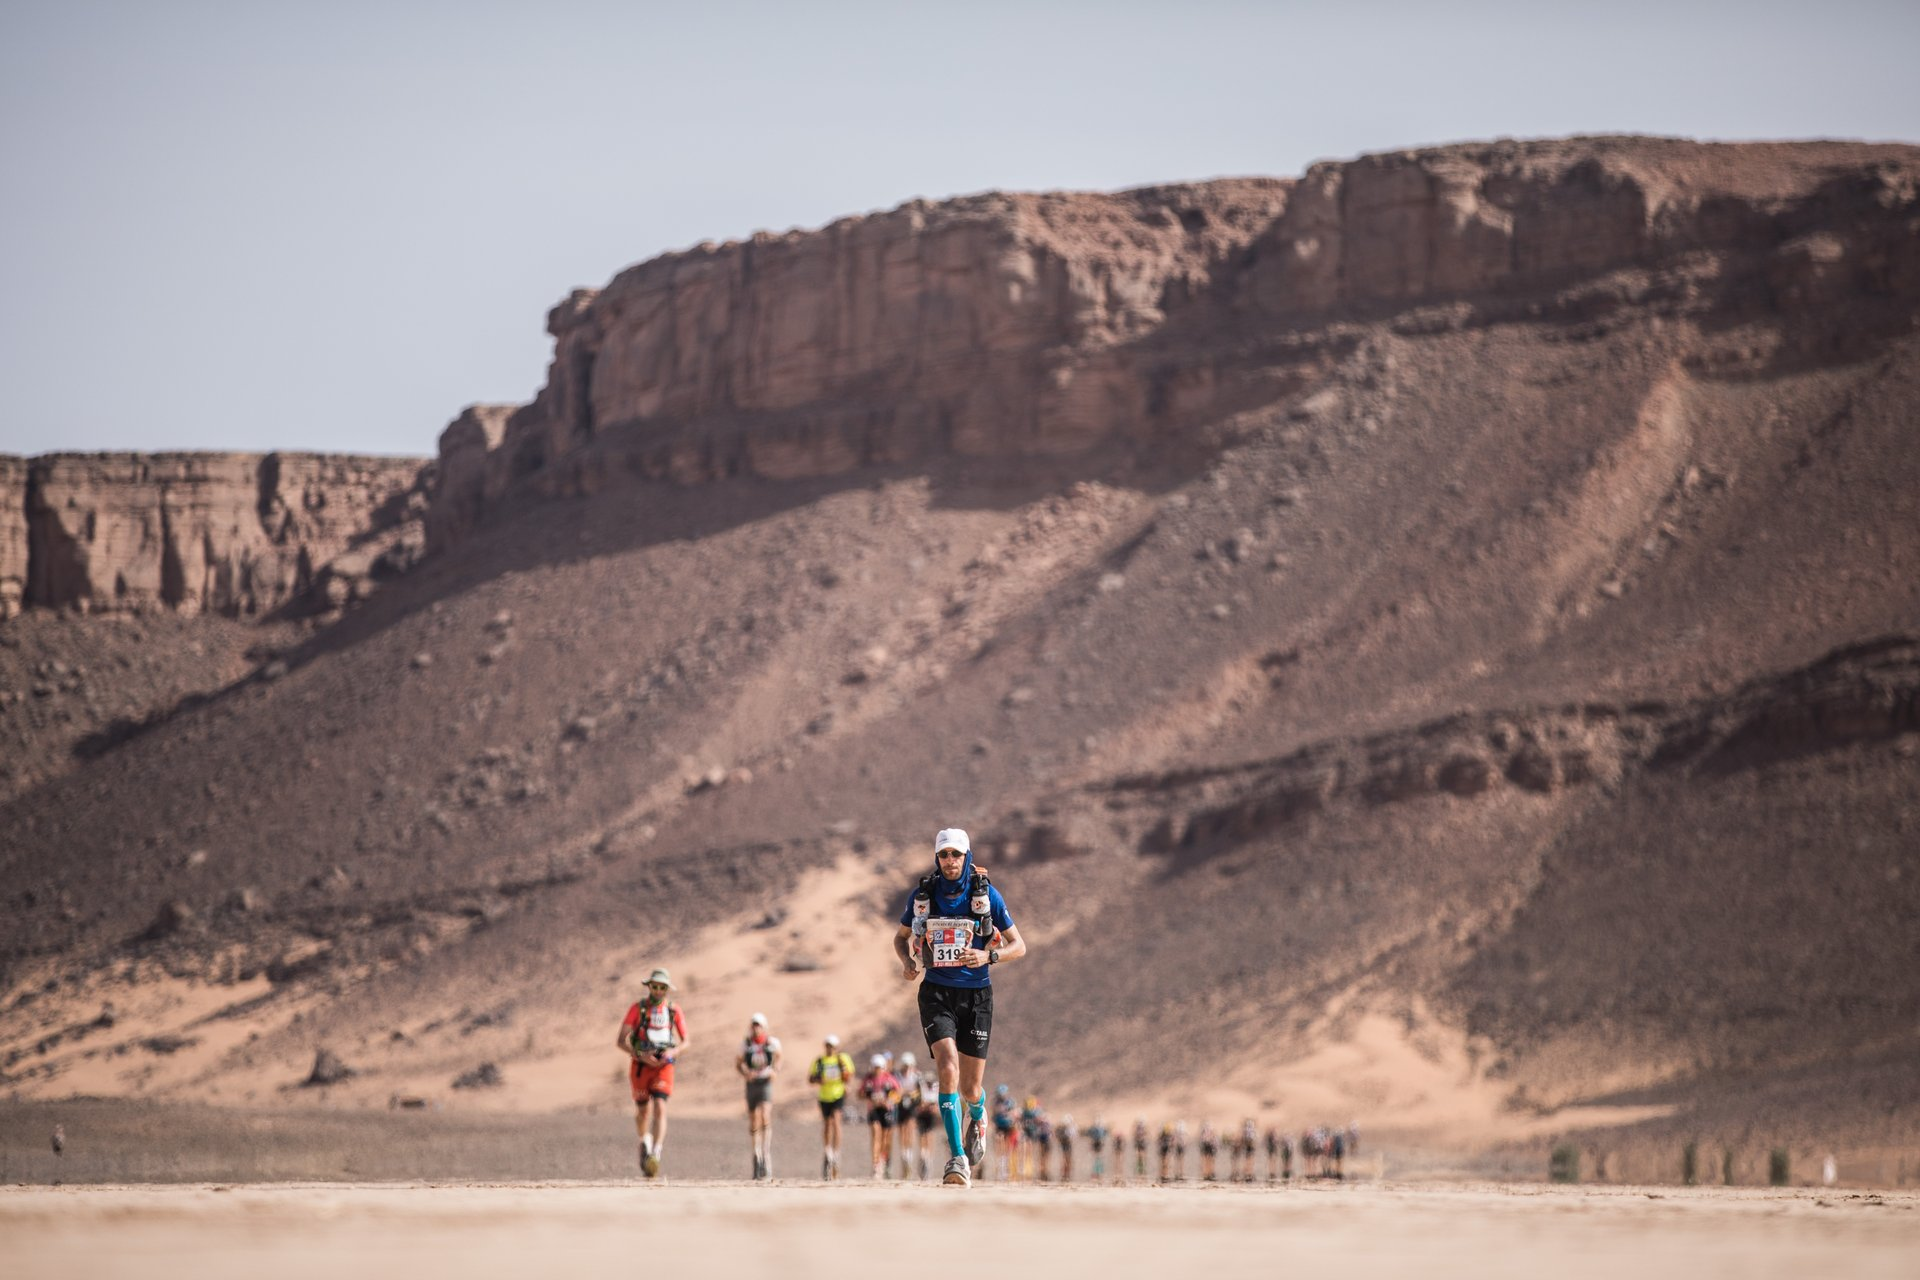 Best time for Marathon Des Sables (MDS) in Morocco 2019